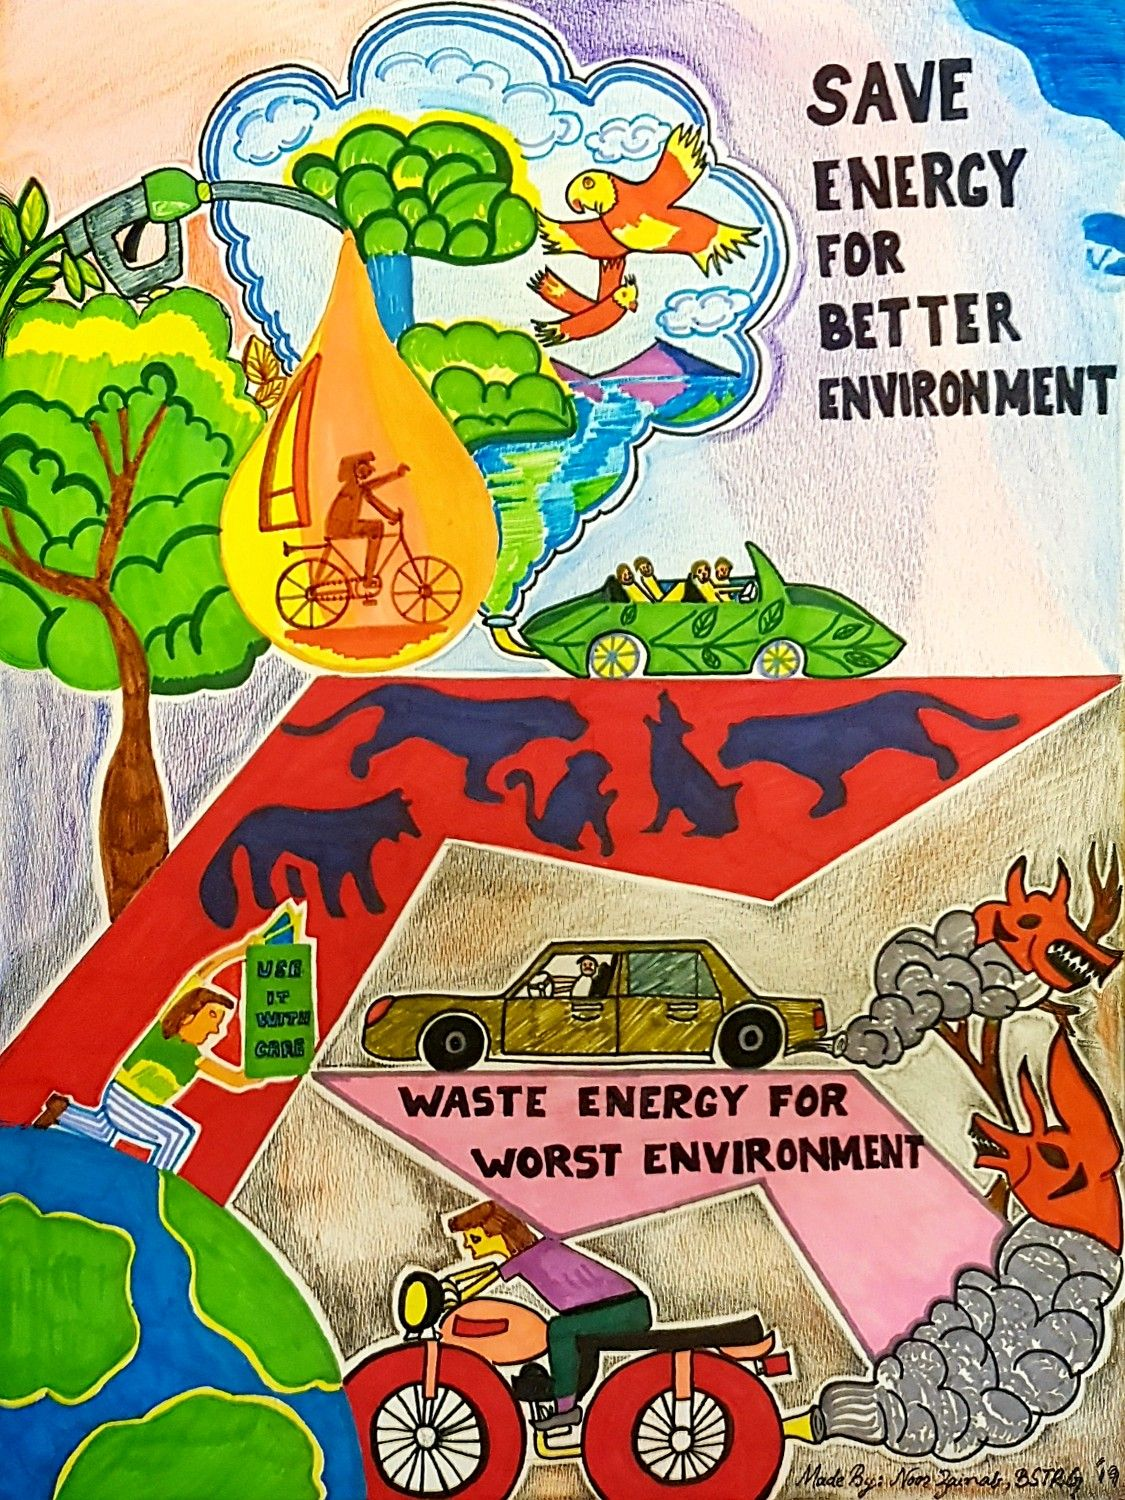 Energy Conservation Poster Energy Conservation Poster Save Environment Posters Save Energy Poster